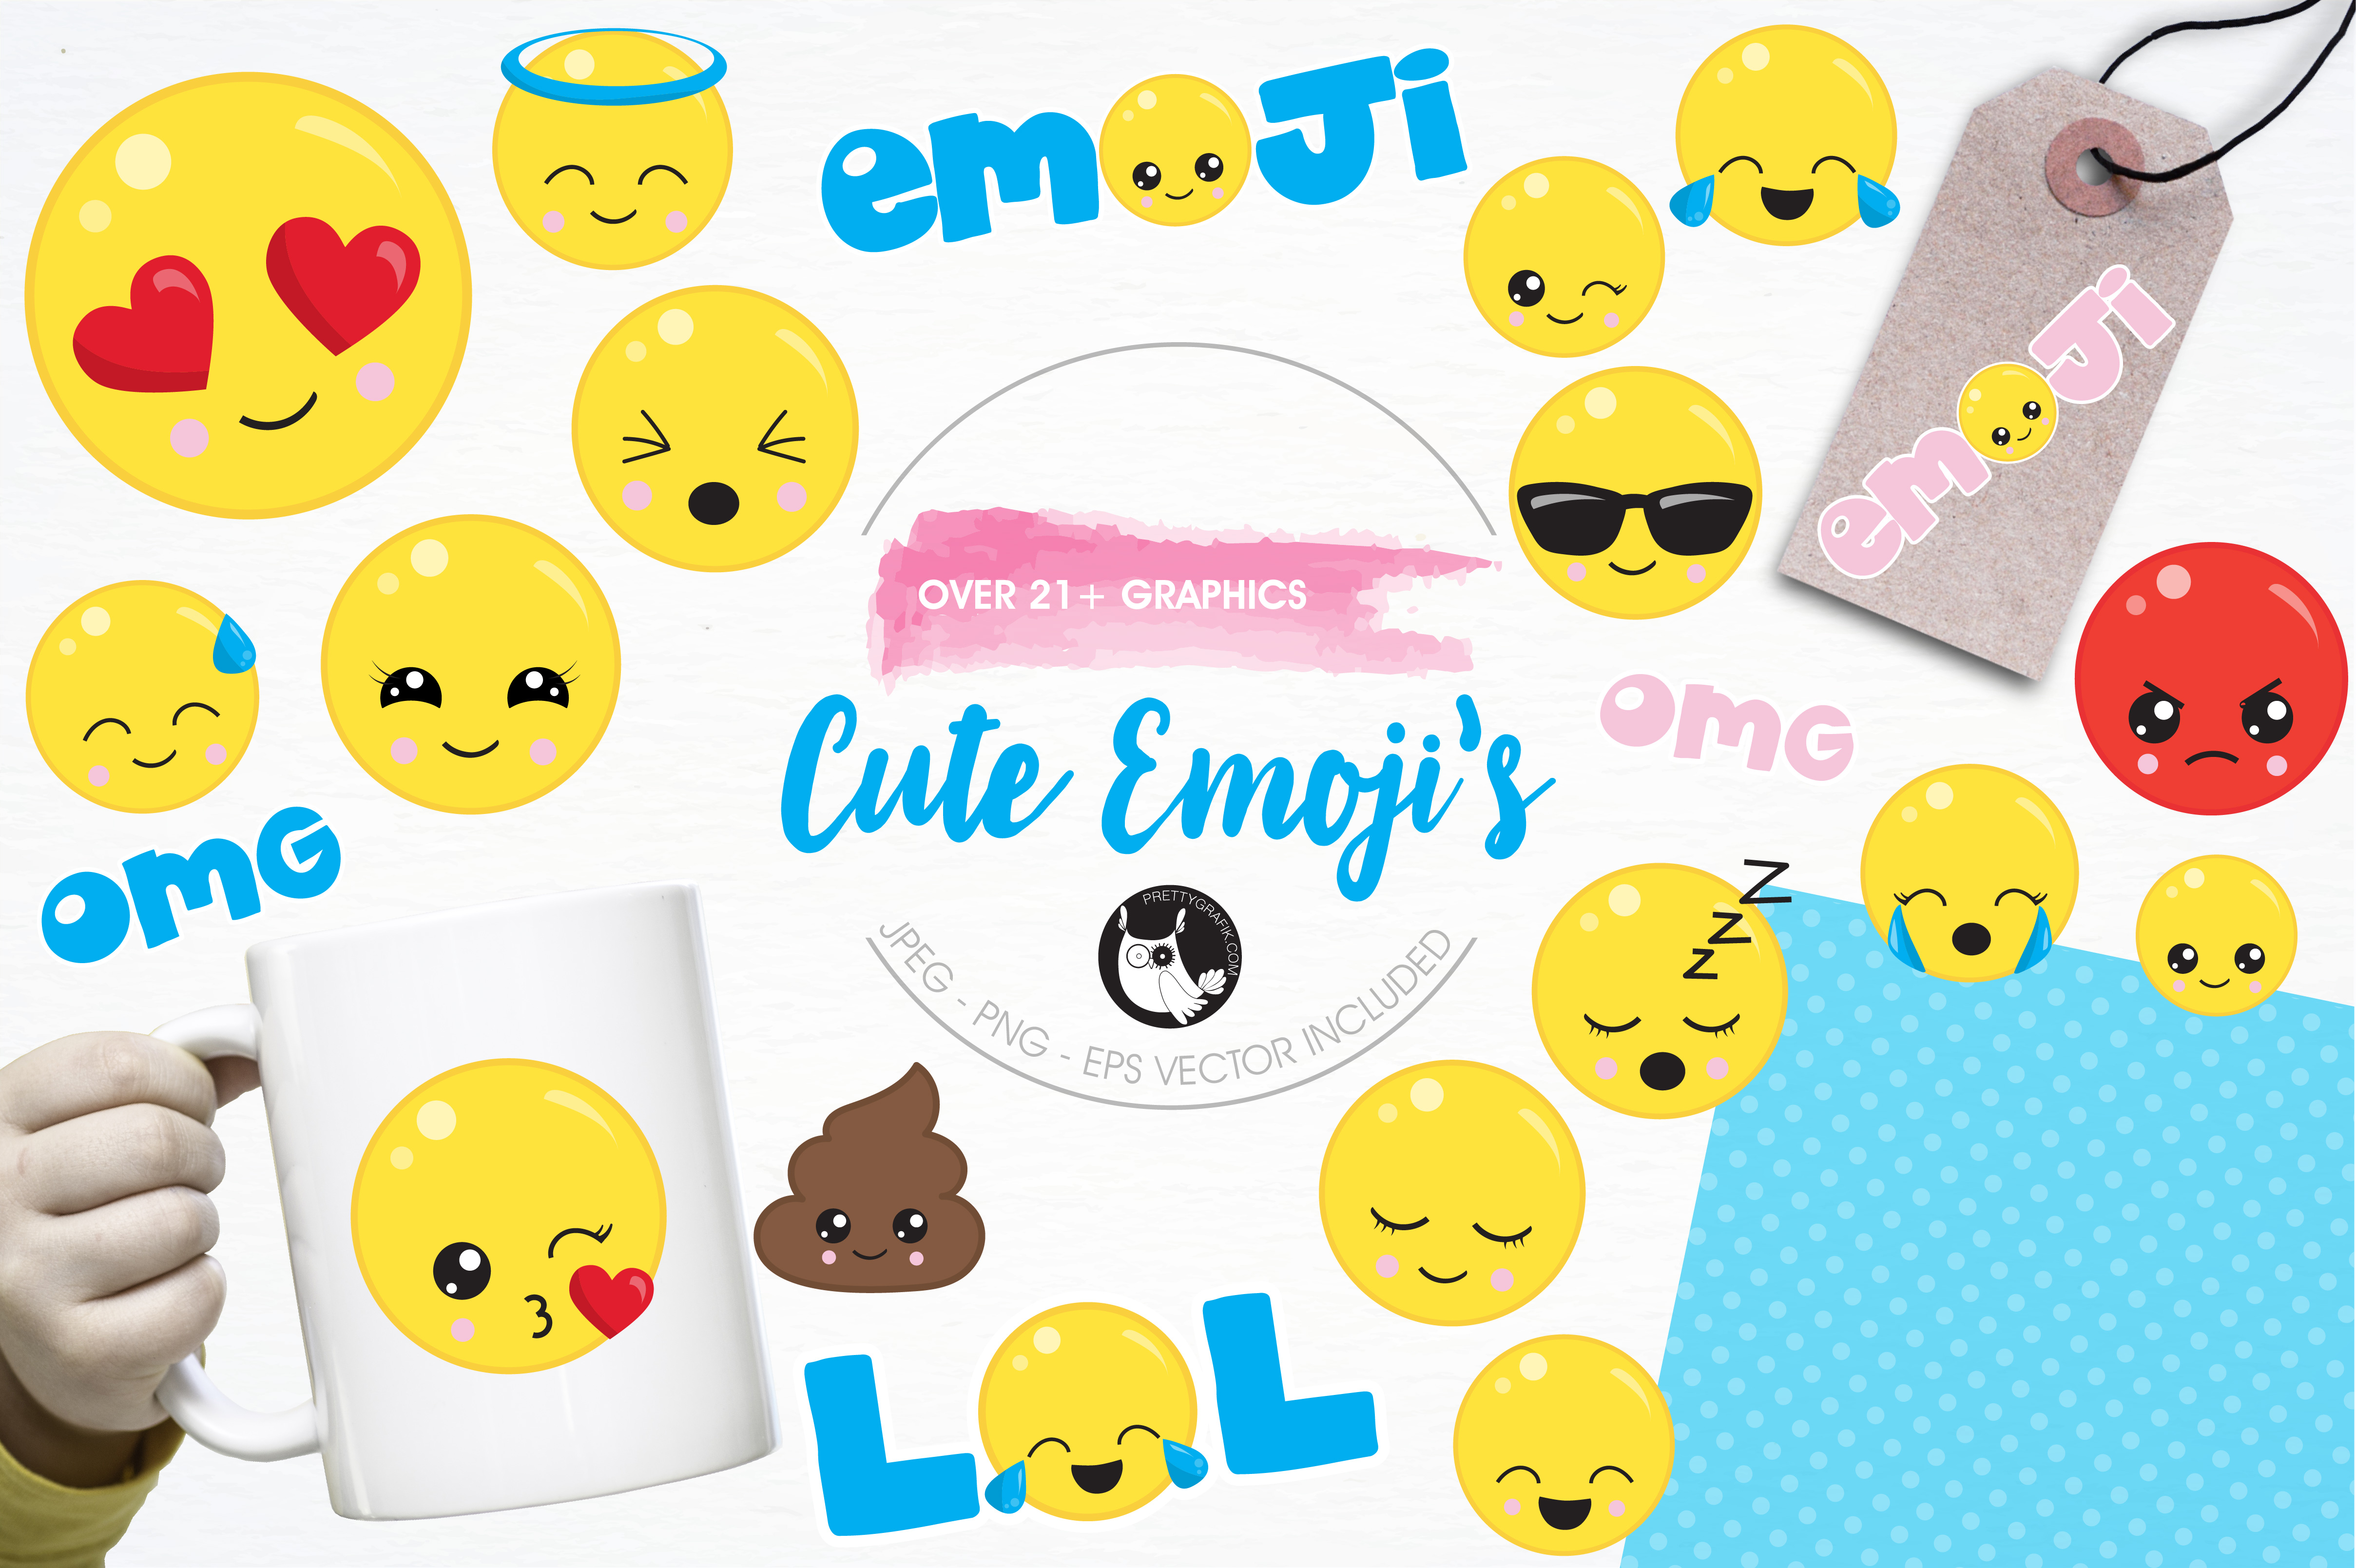 Cute emoji graphics and illustrations example image 1